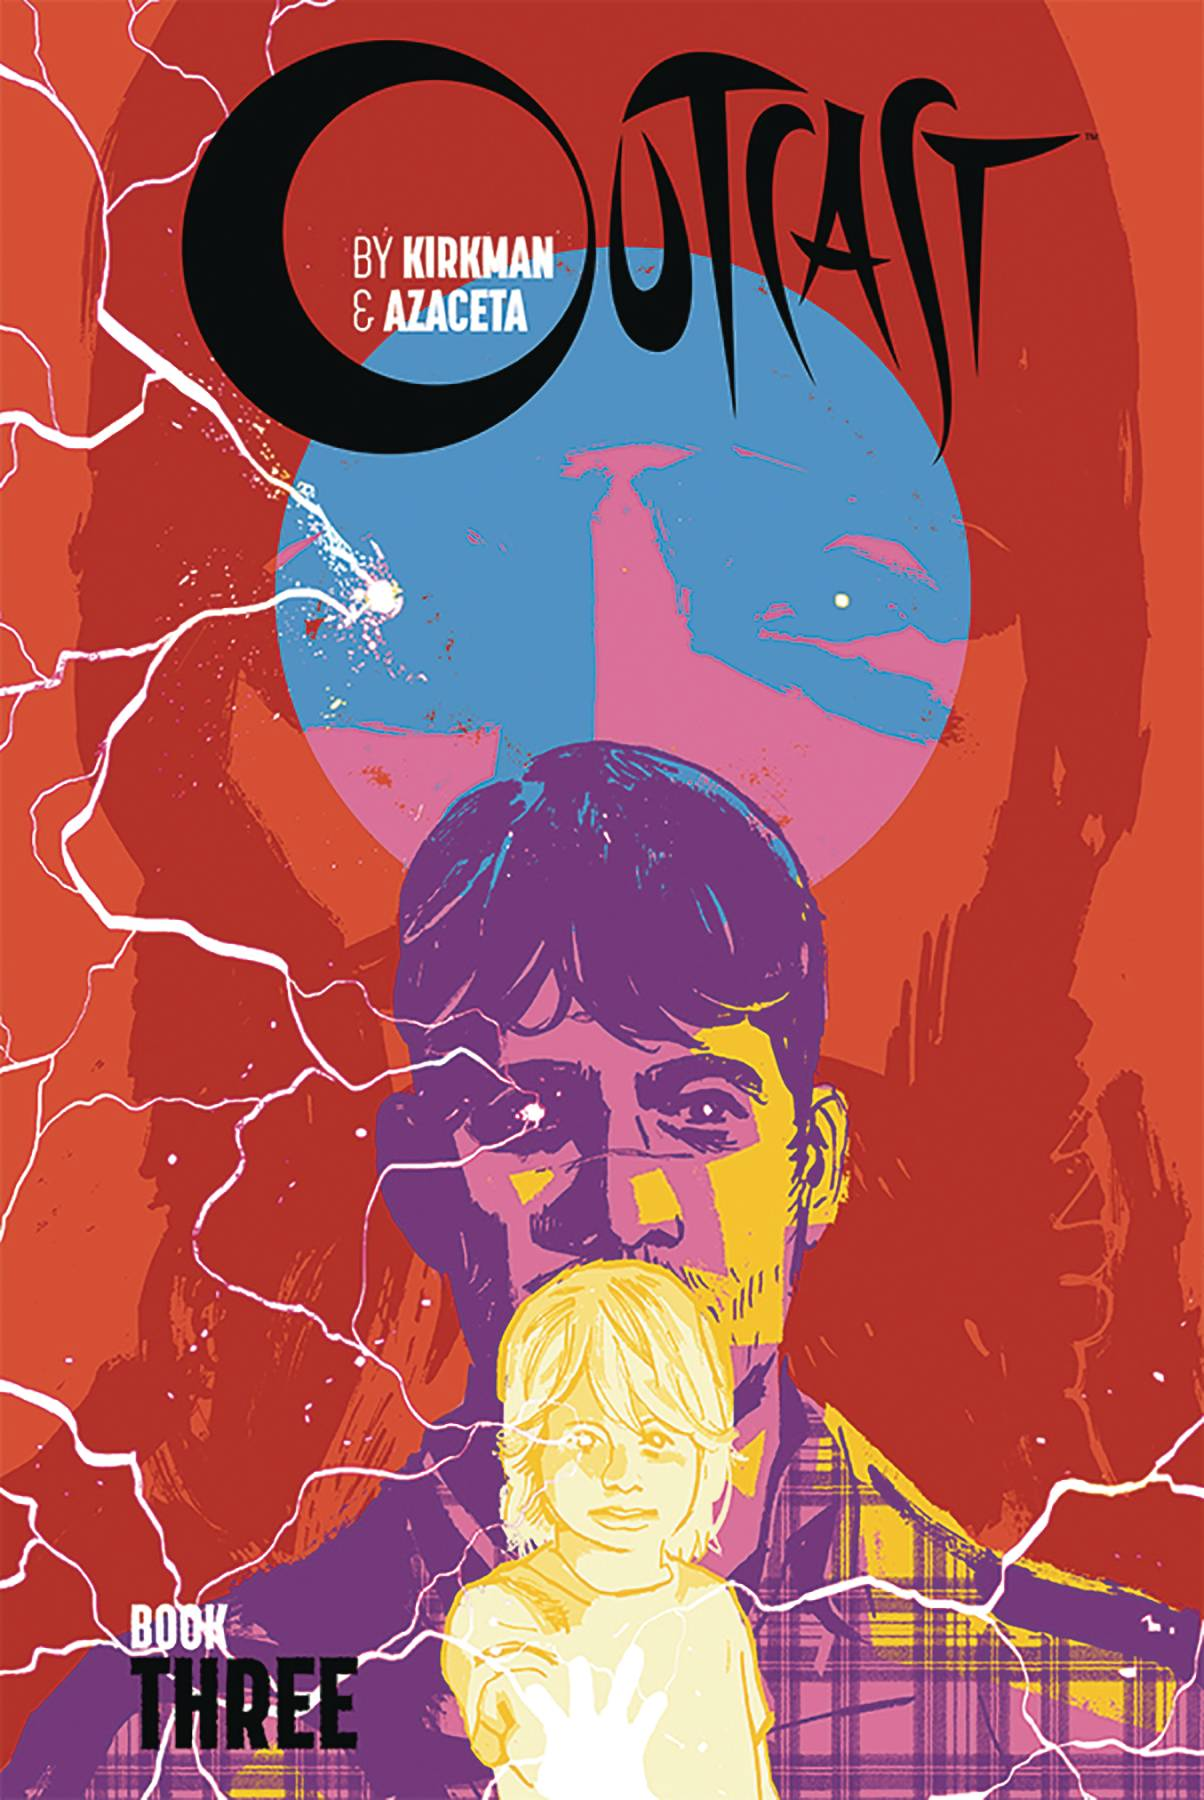 OUTCAST BY KIRKMAN & AZACETA HC BOOK 03 (APR190078) (MR)